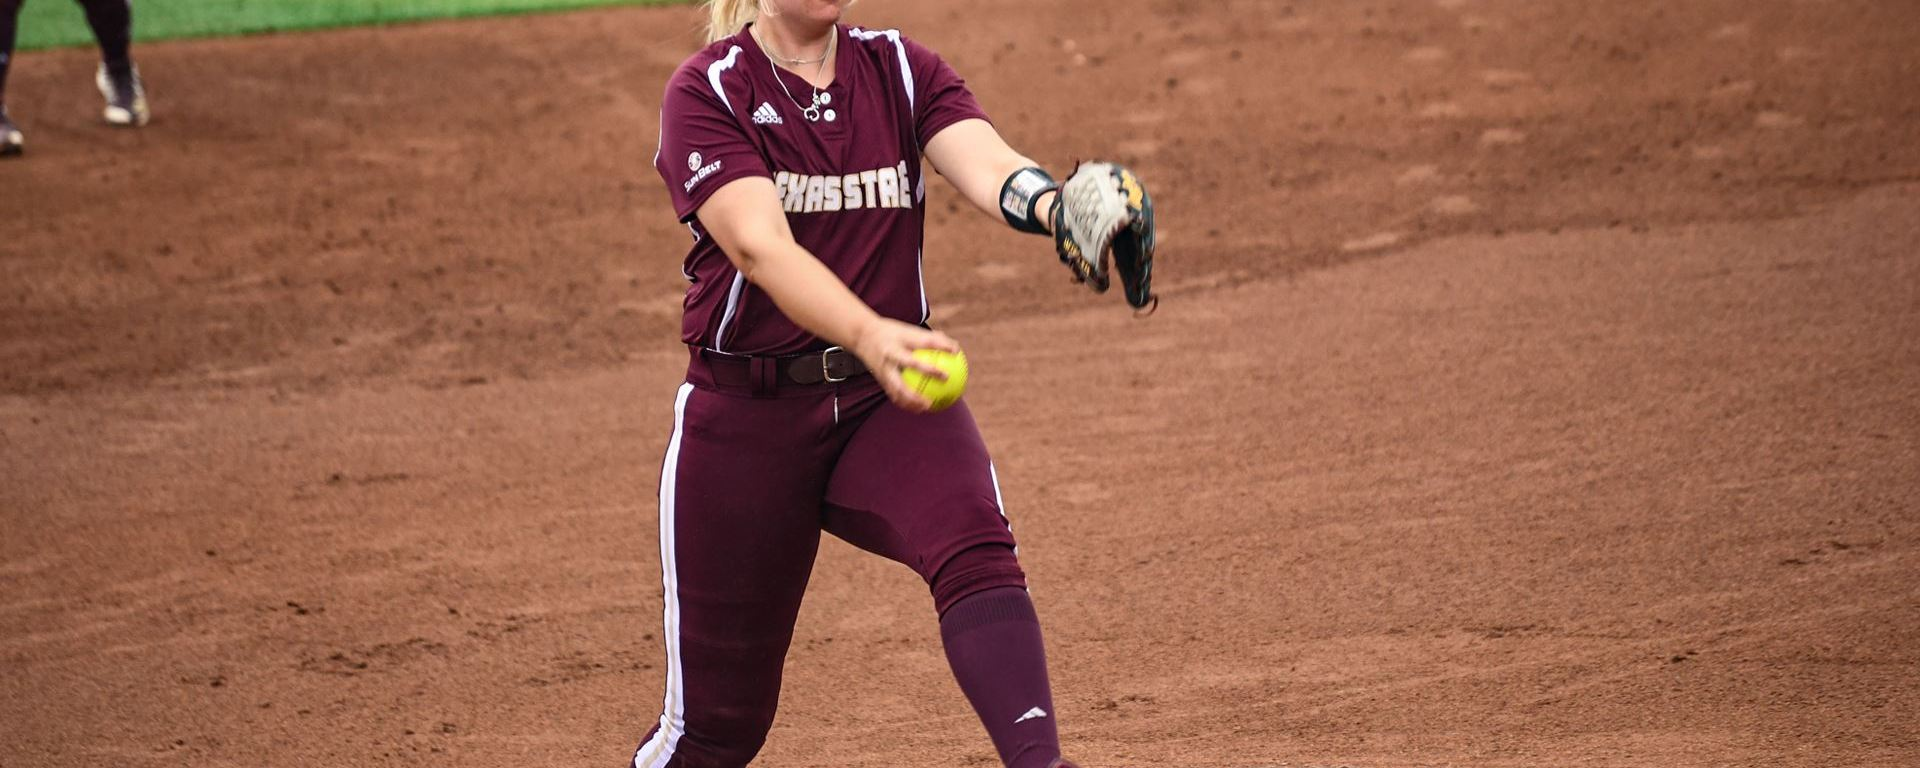 Senior Pitcher Krista Jacobs winds up for the pitch against the Panthers.